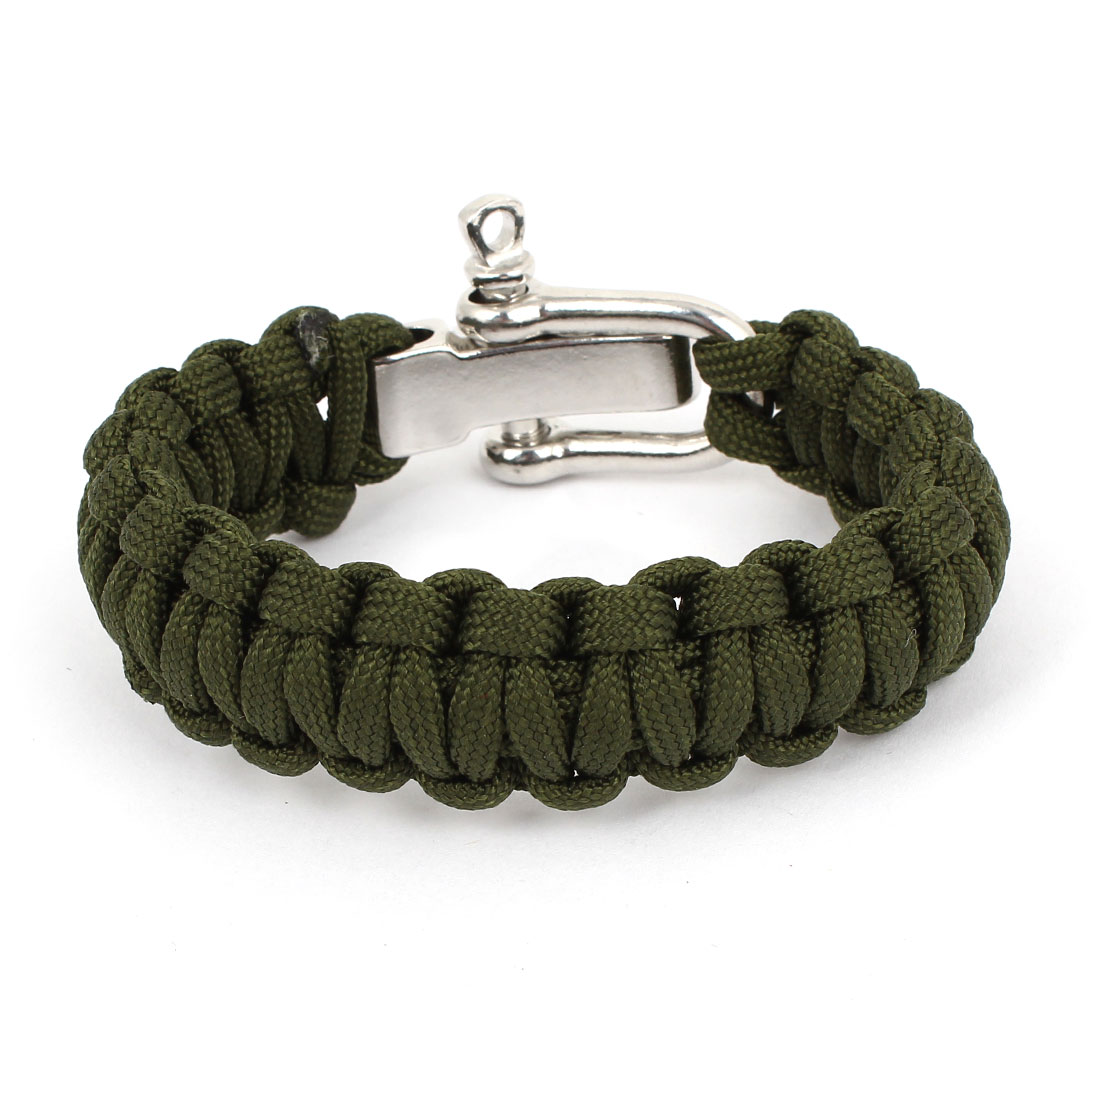 Outdoor Camping Army Green Nylon Weave Textured Self-Rescue Cord Survival Bracelet